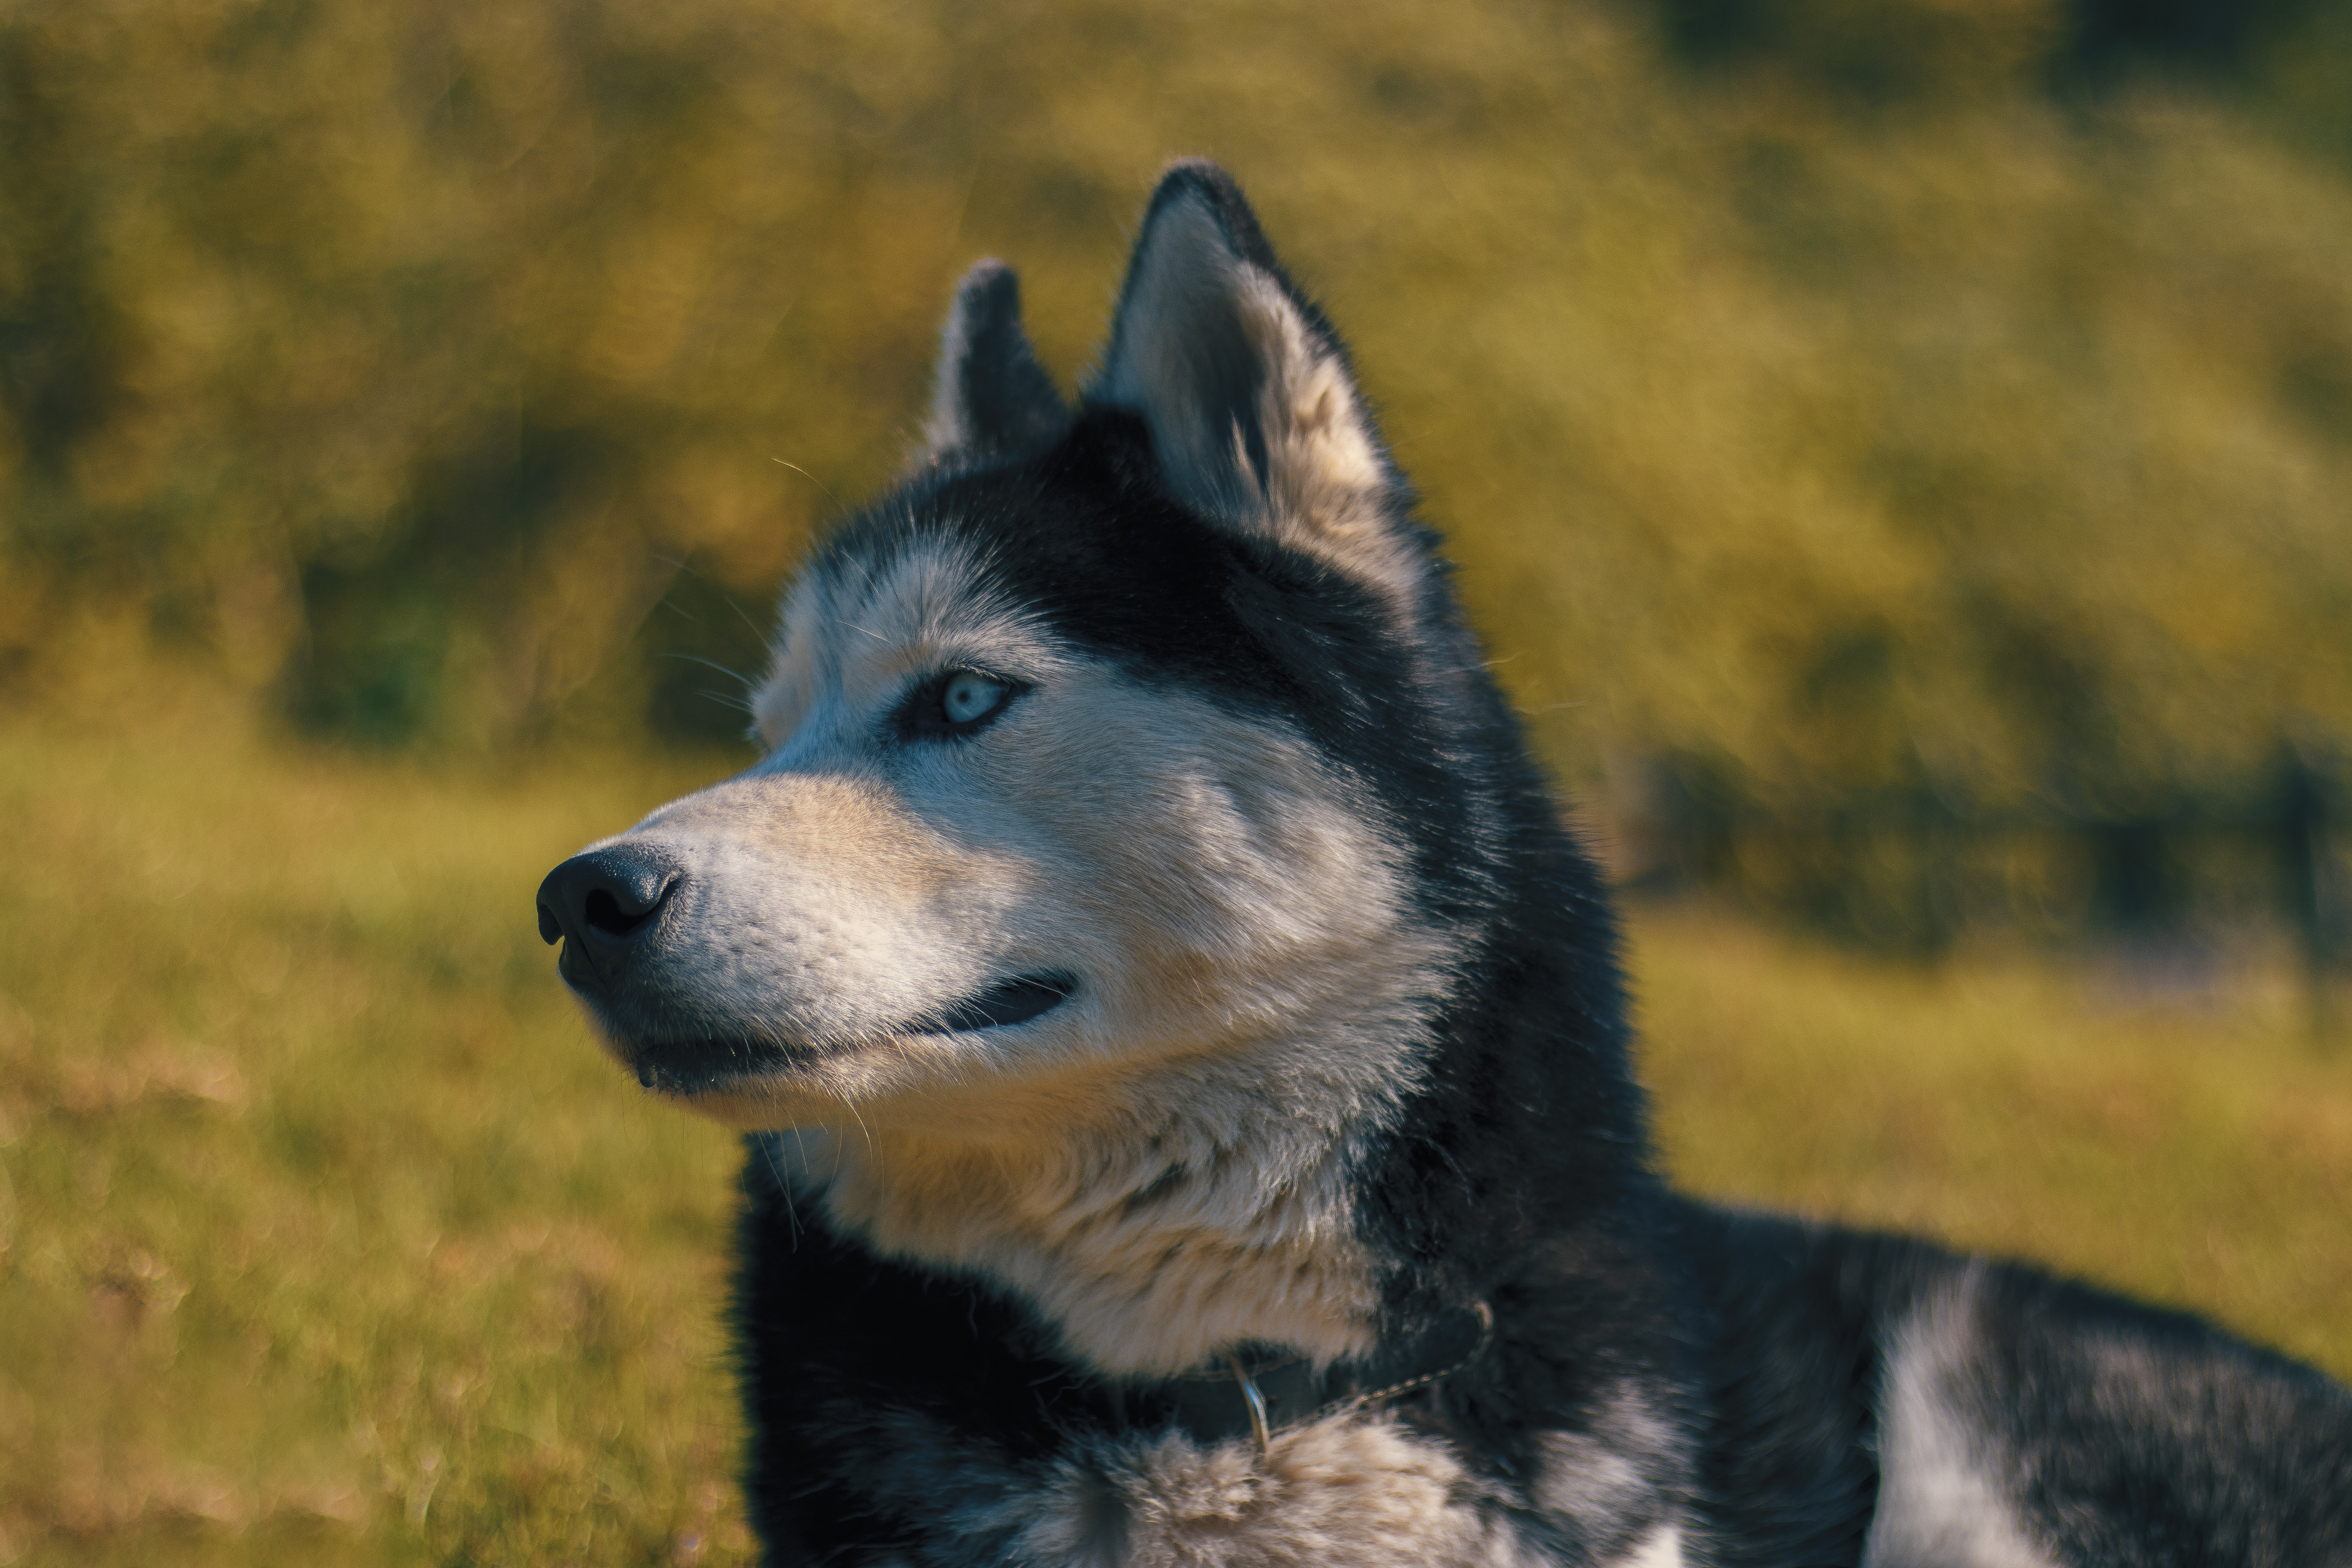 149577 download wallpaper Animals, Husky, Haska, Muzzle, Dog, Blur, Smooth screensavers and pictures for free